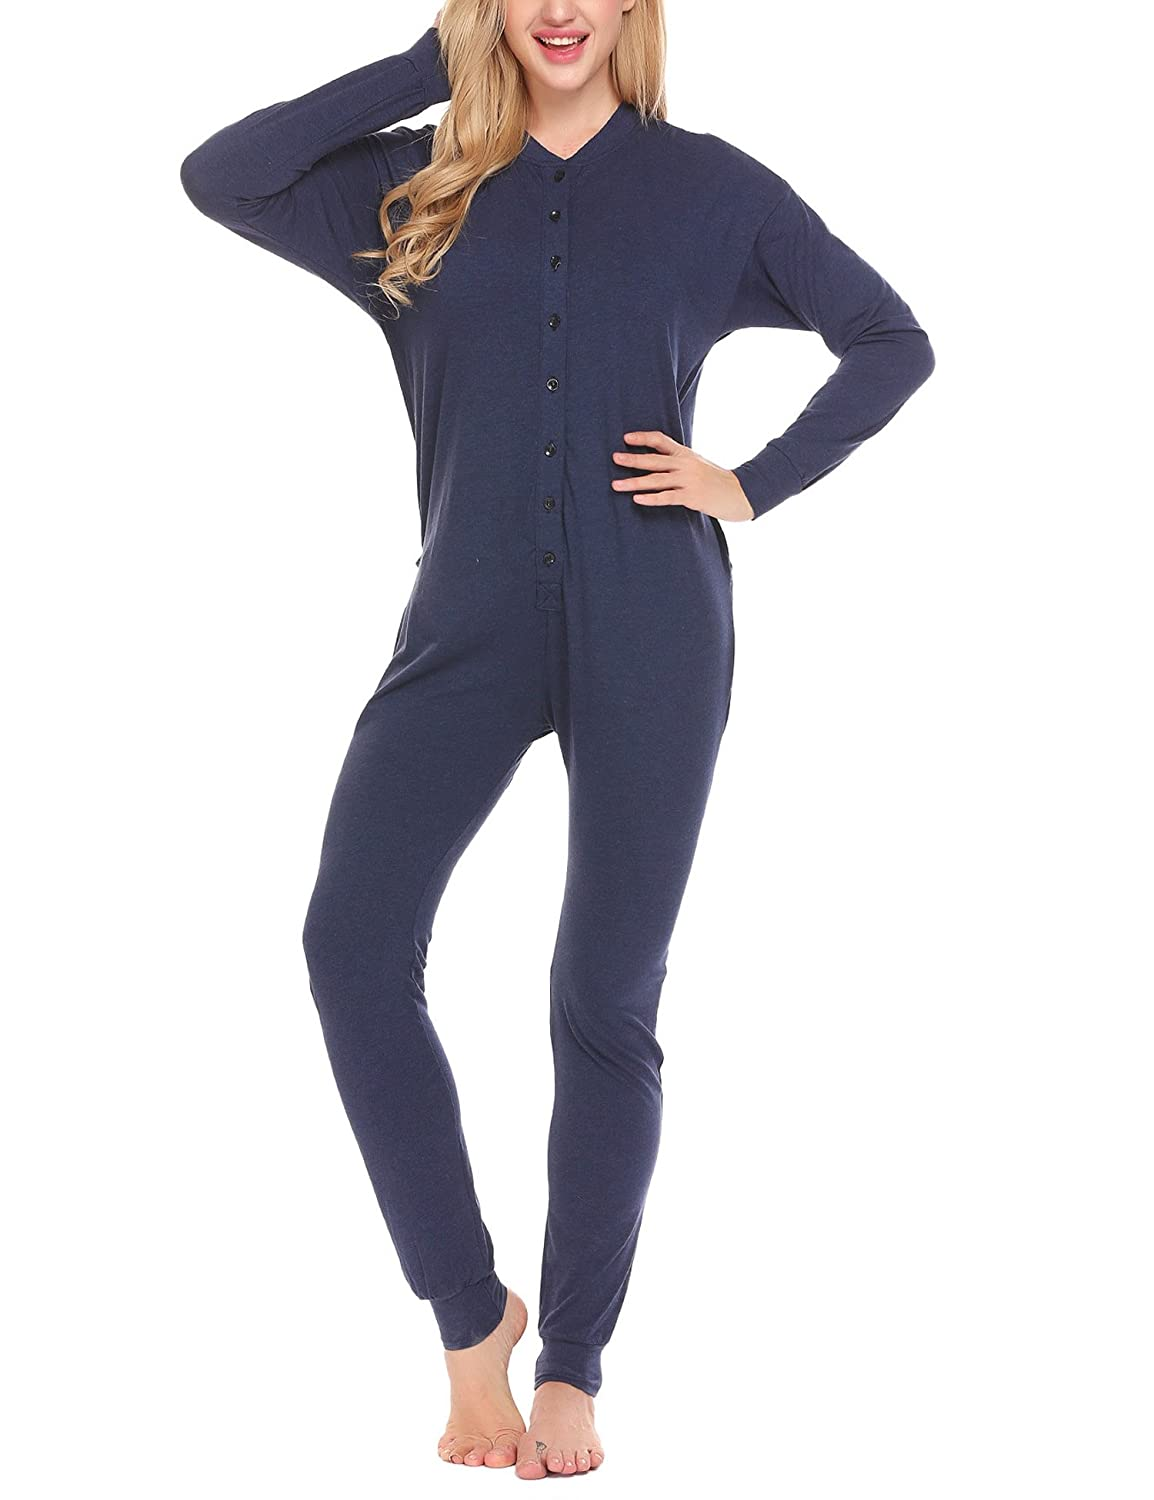 Ekouaer Bandage One Piece Pajama Romper Long Sleeve Jumpsuit Sleepwear for Women EKK007182#